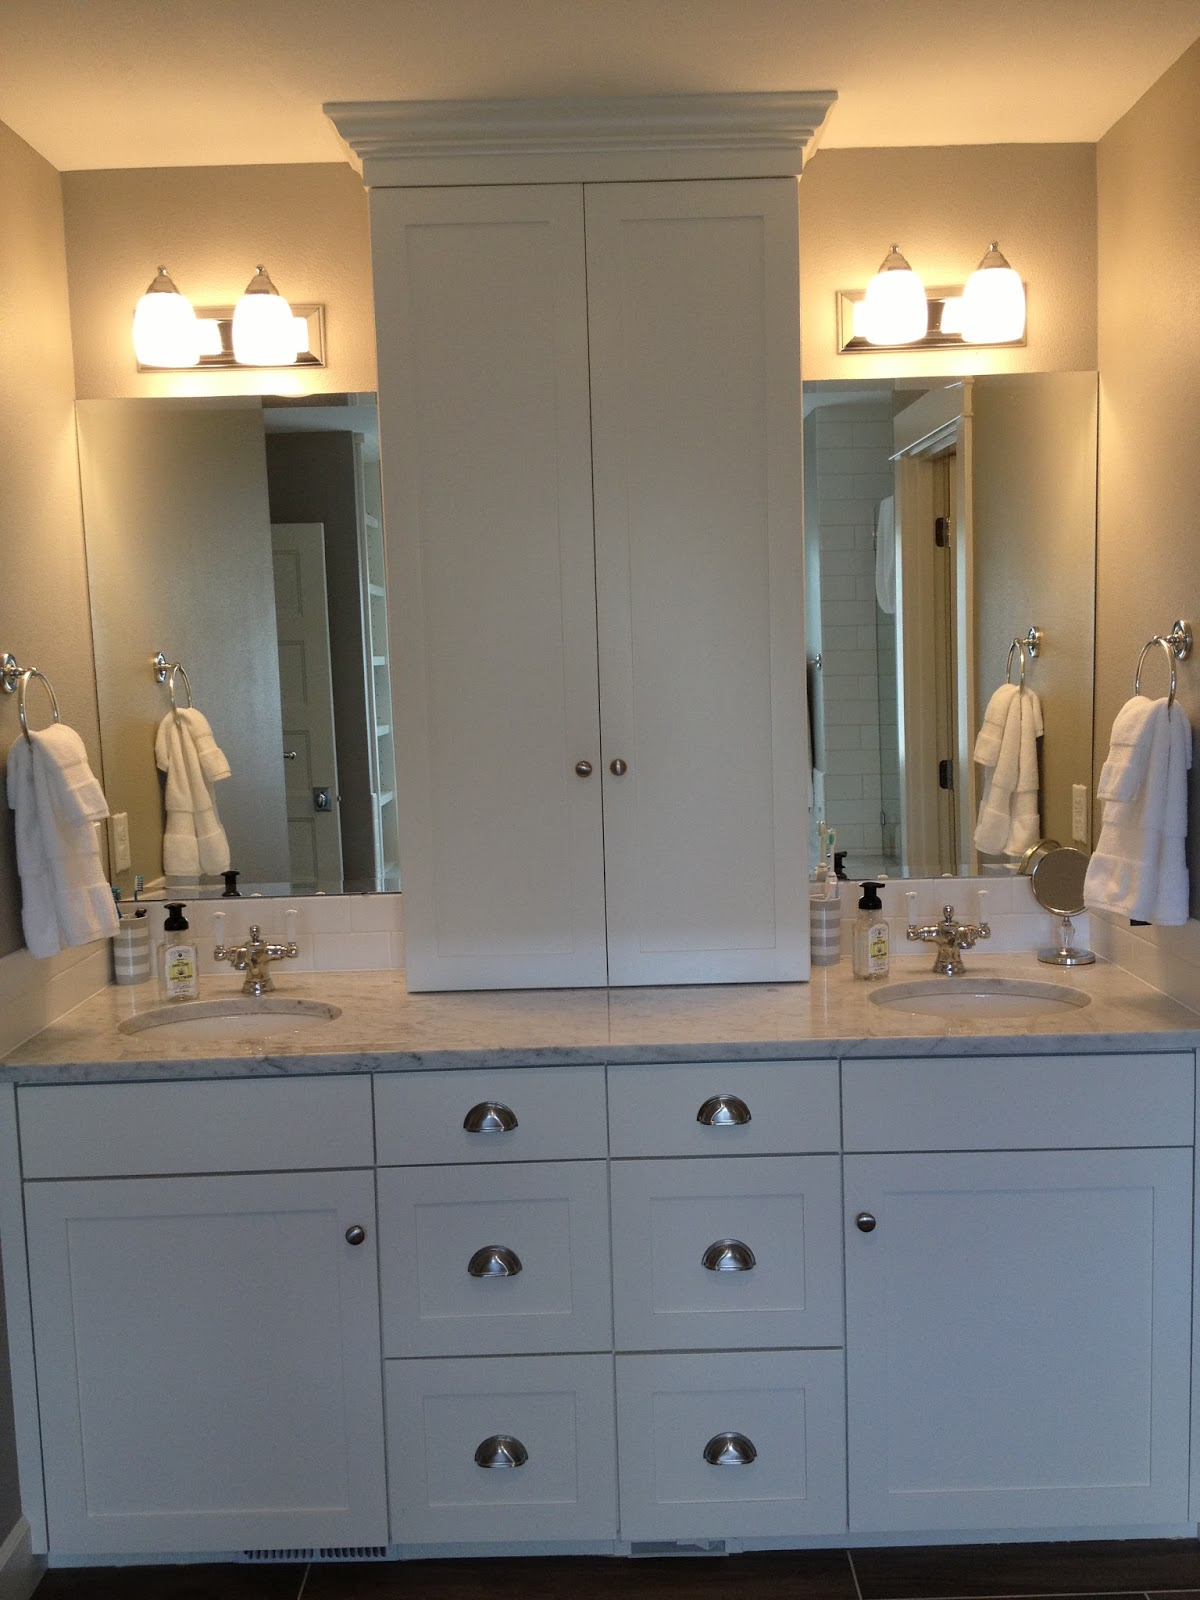 Building our dream home, from the ground up: House tour - master bath